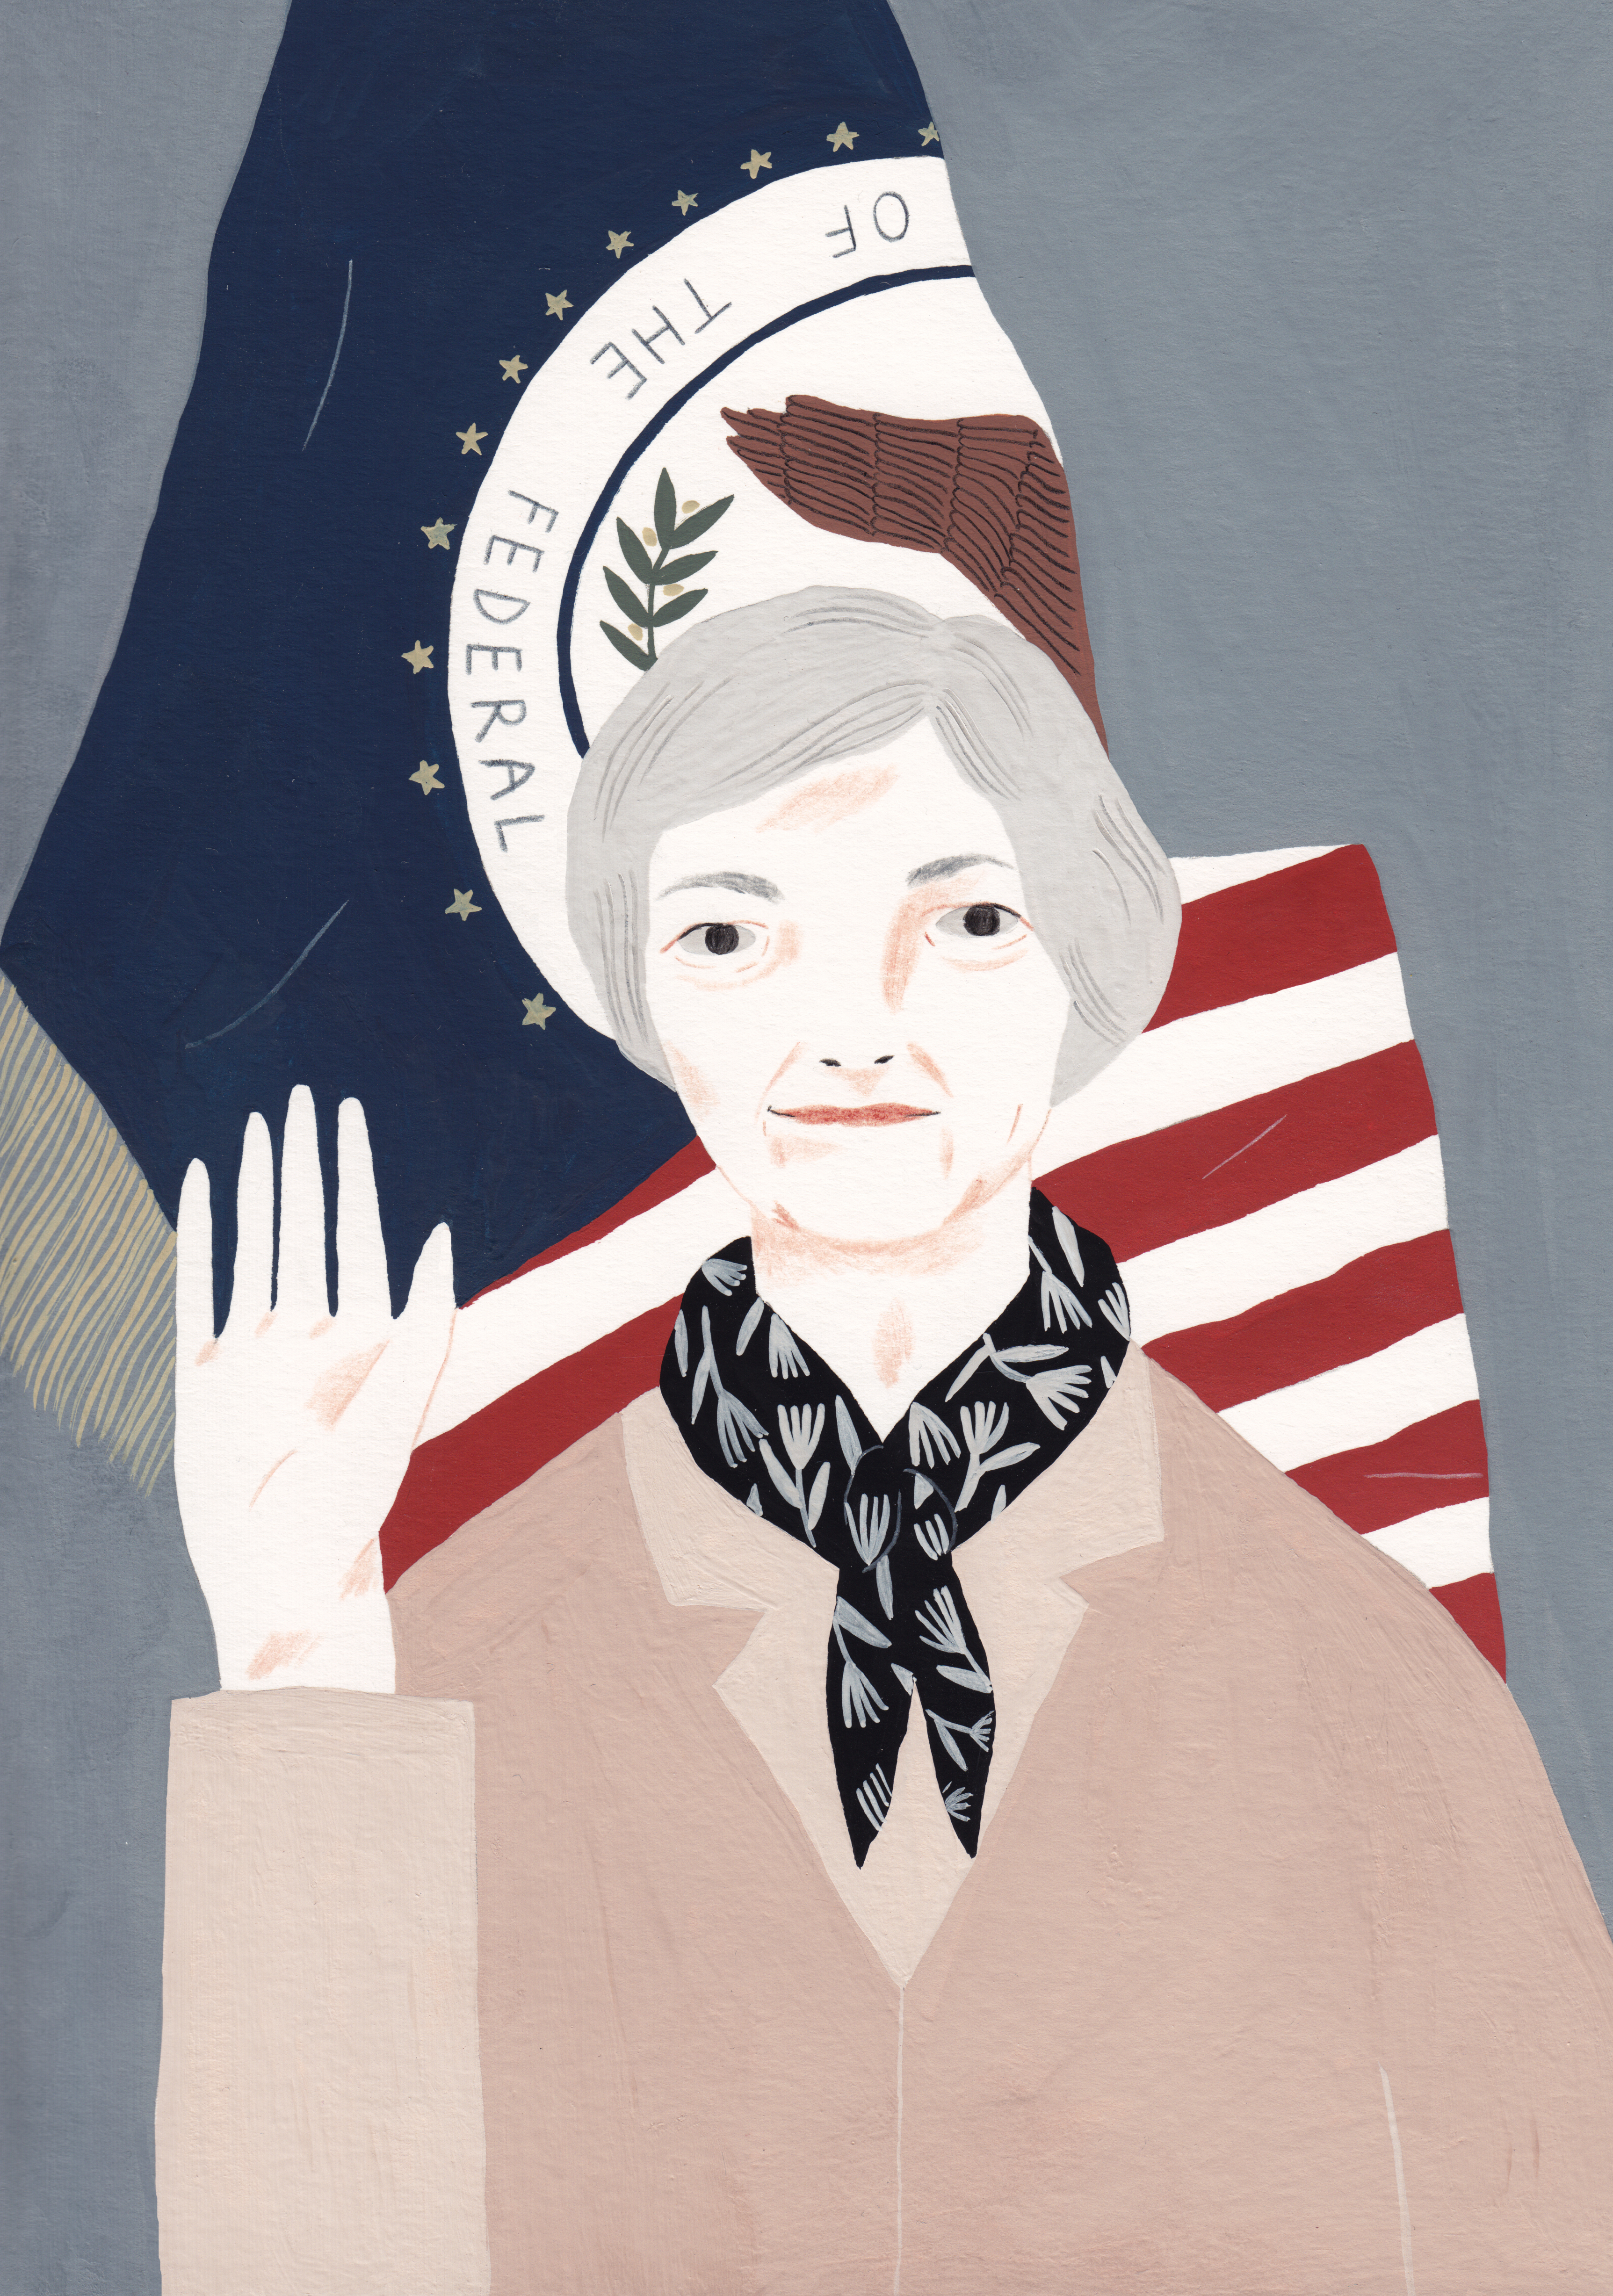 Illustration of Janet Yellen the first woman to serve as Chair of the U.S. Federal Reserve